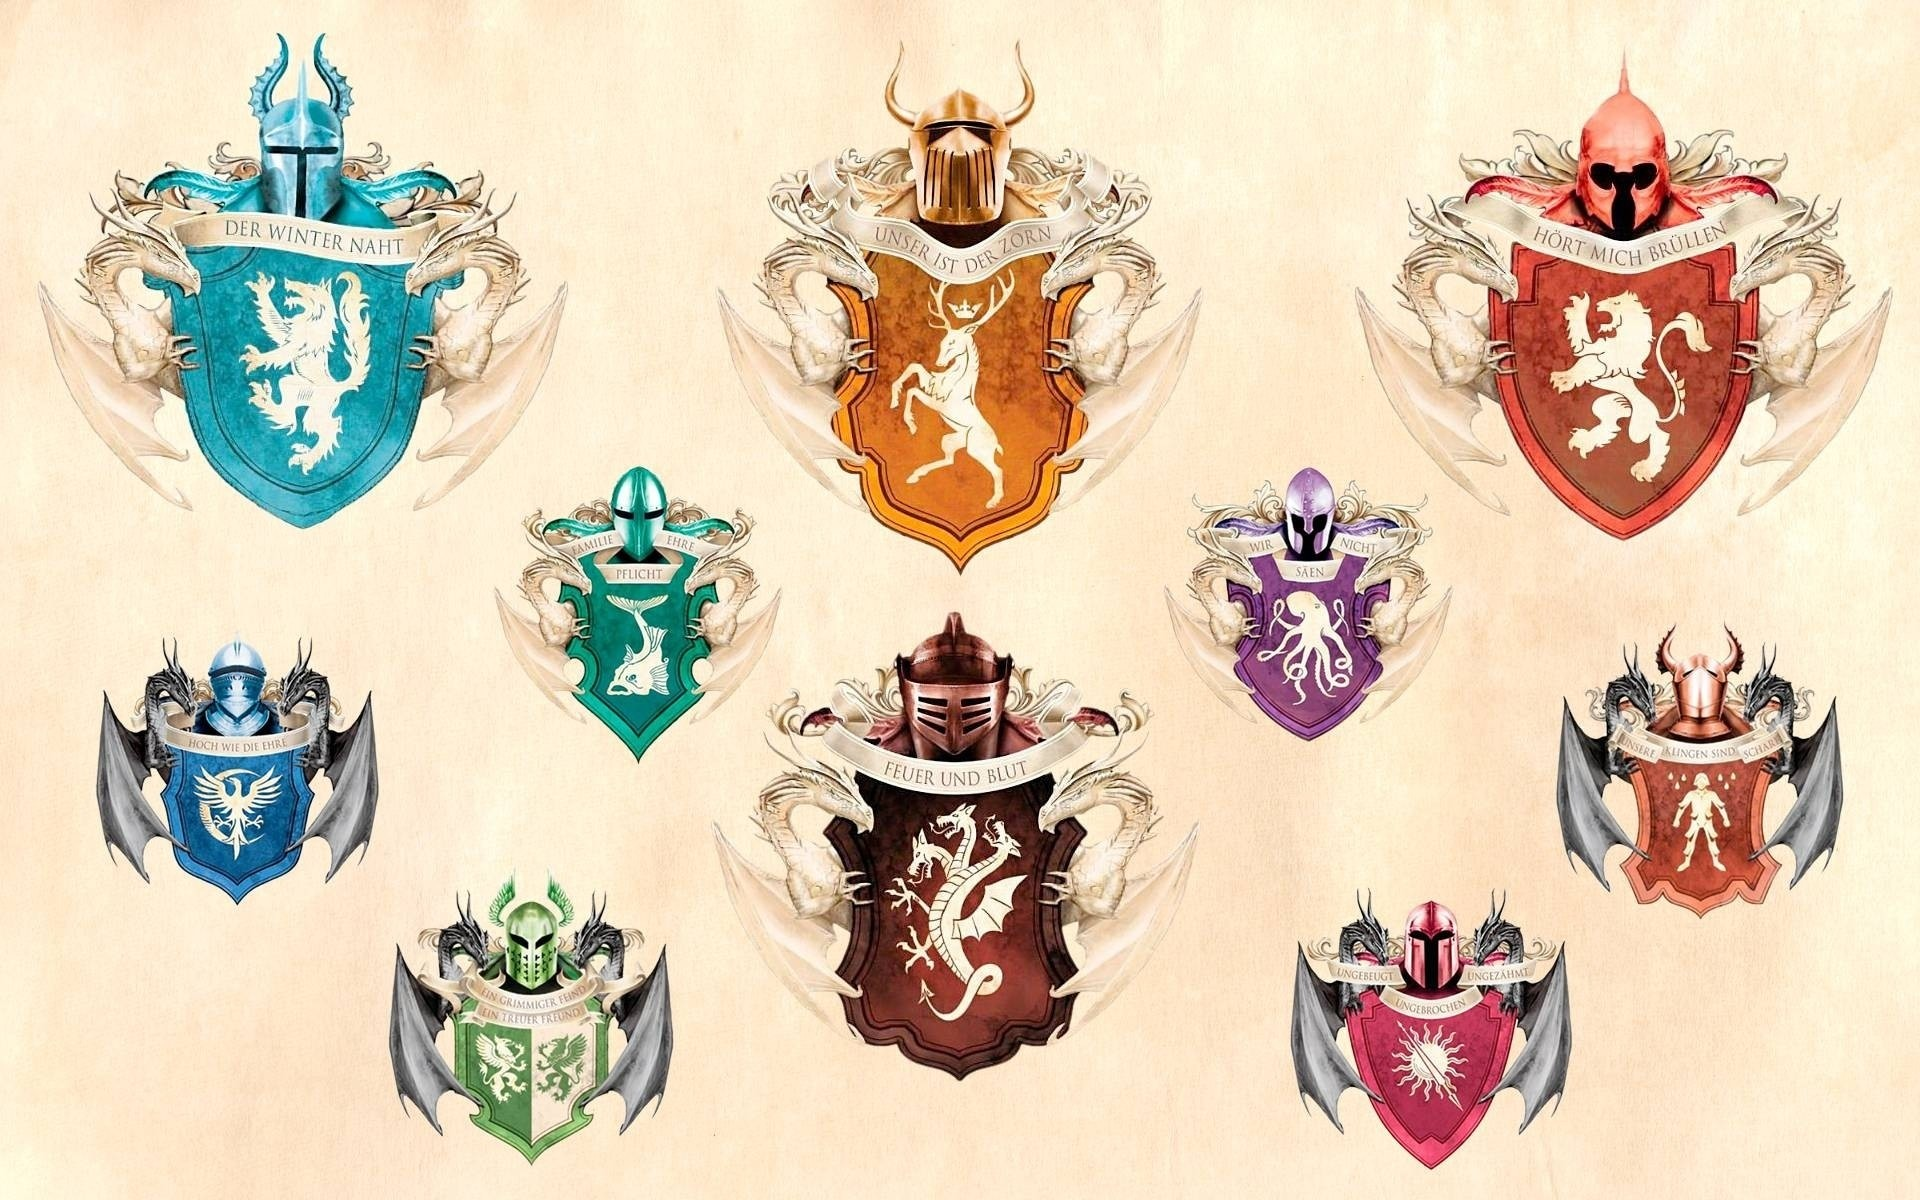 game of thrones a song of ice and fire westeros house stark house targaryen  house baratheon